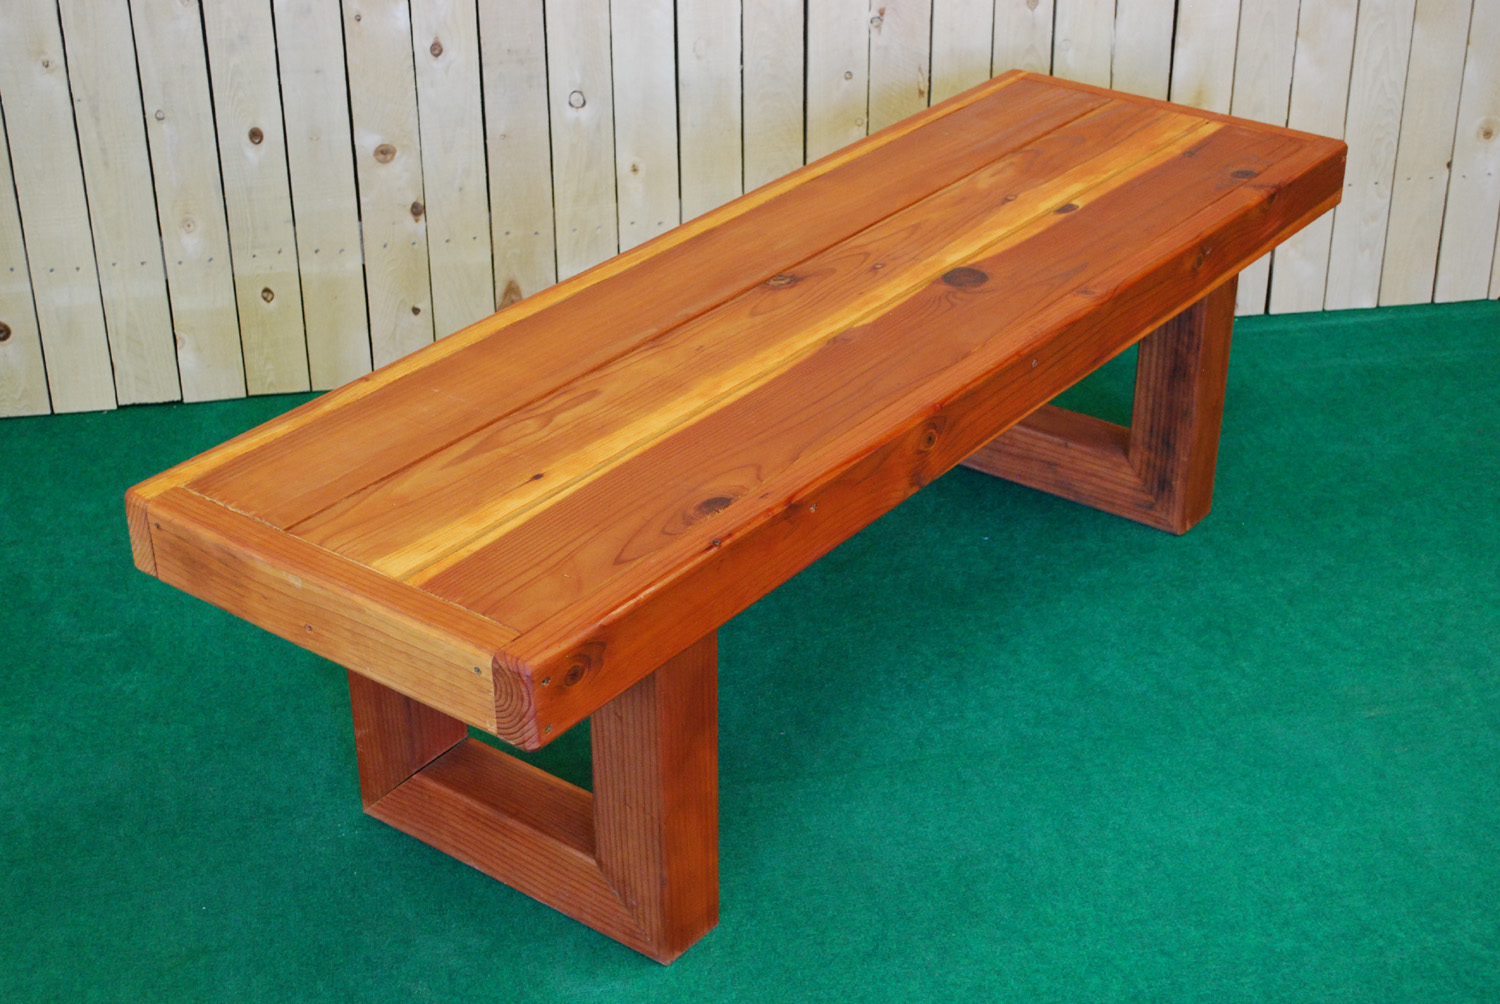 redwood contempo bench (medium)